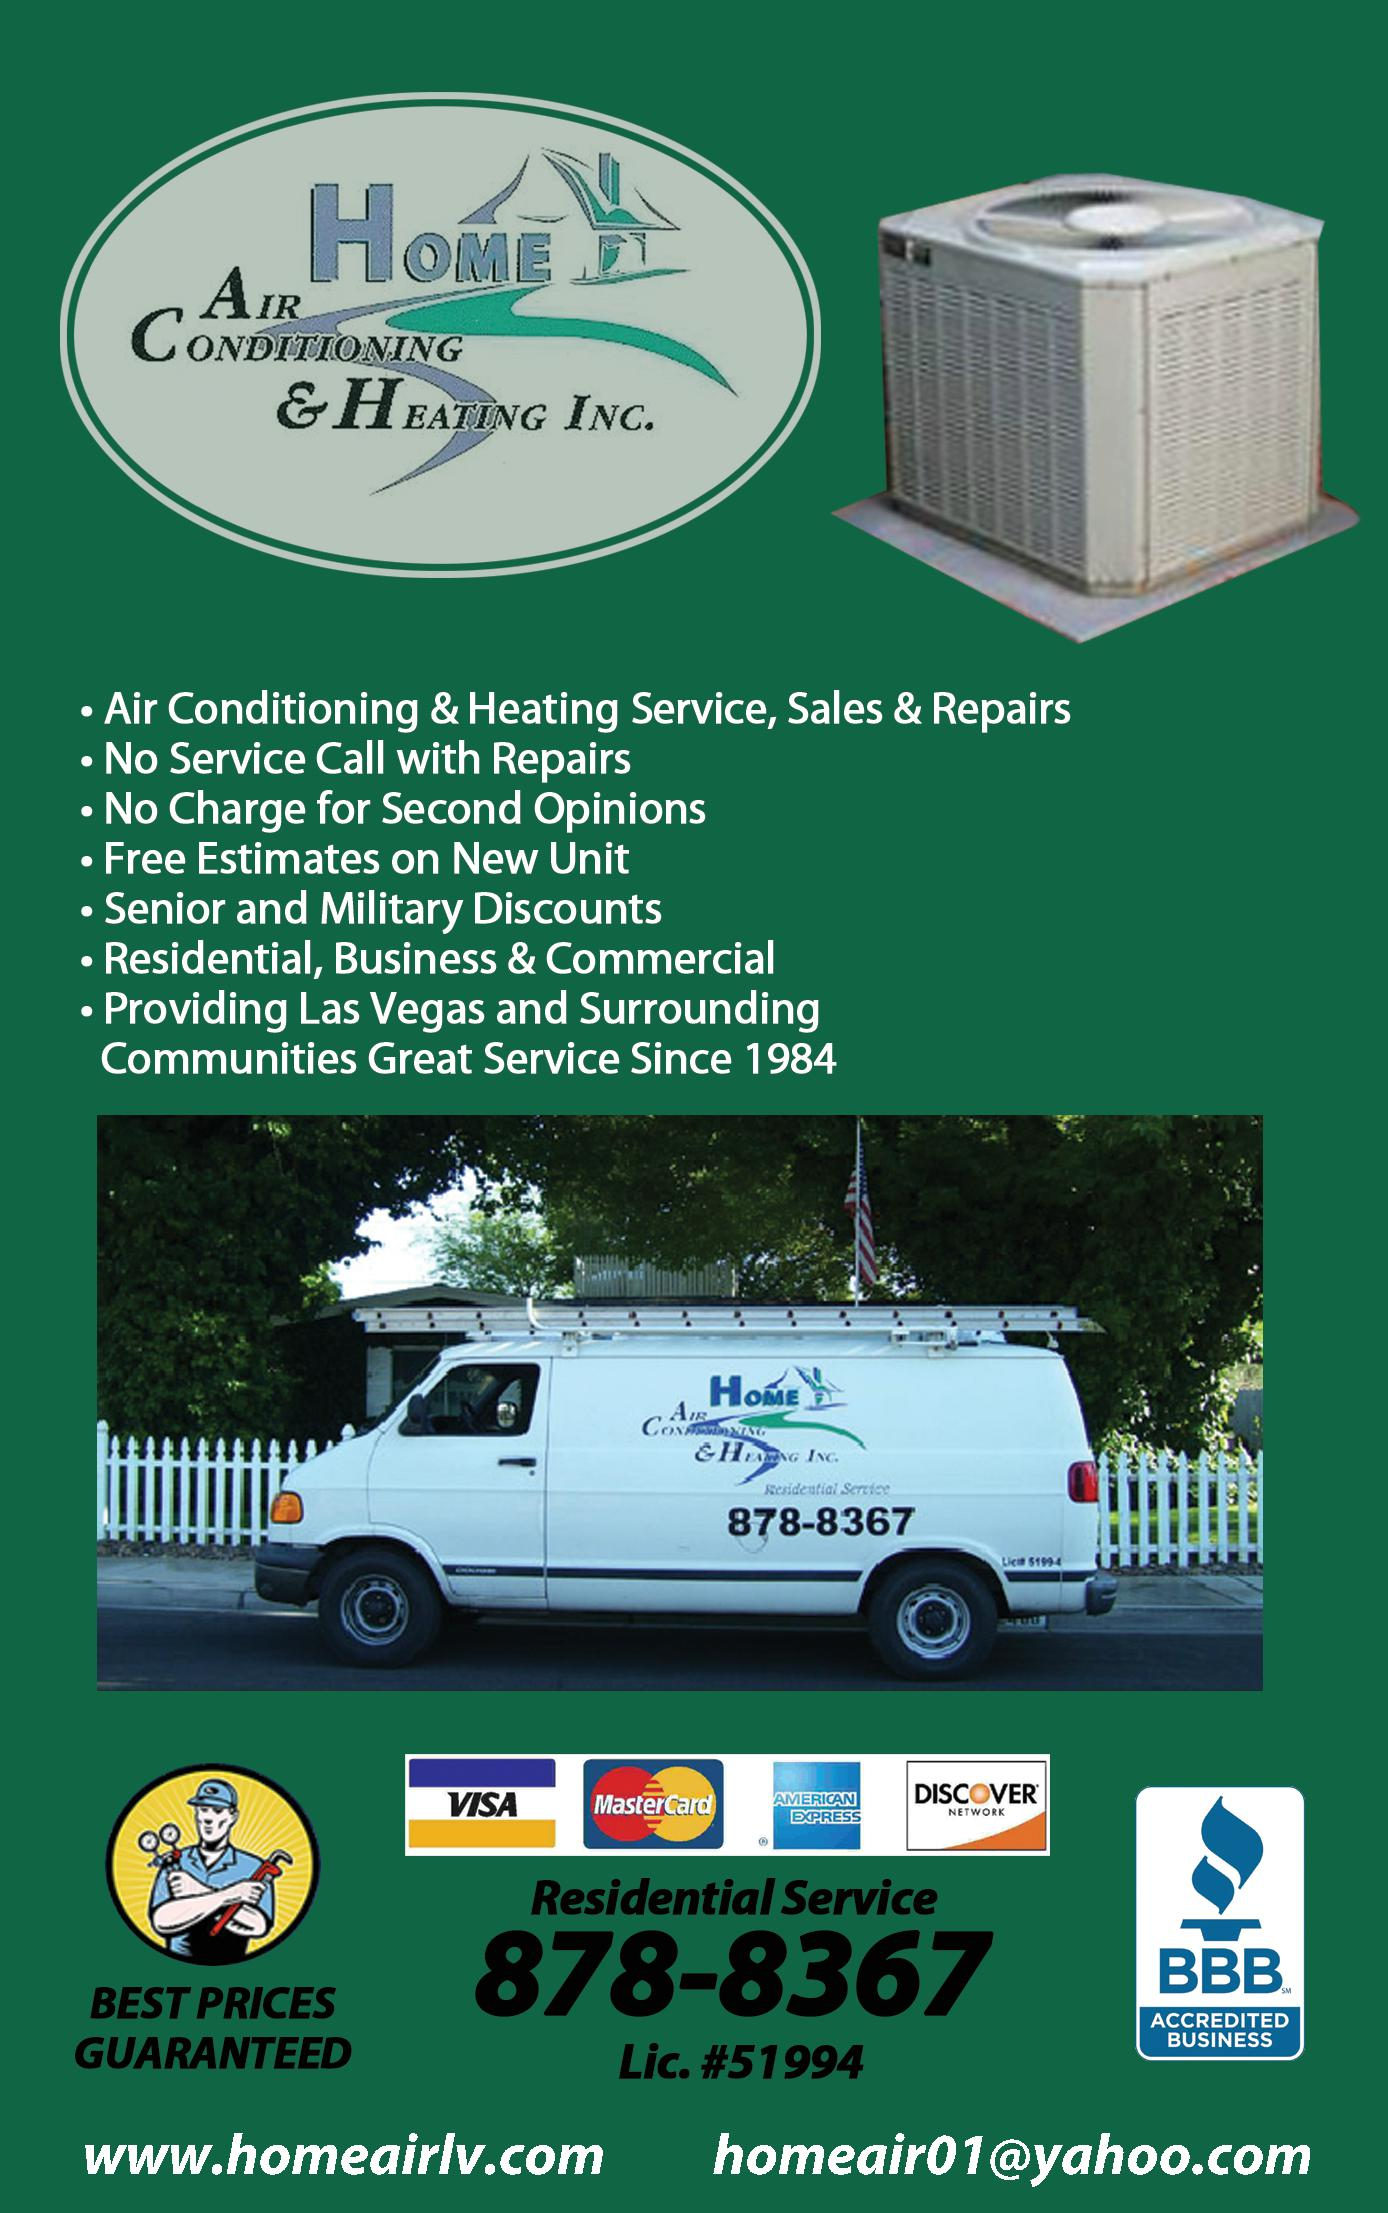 Home Air Conditioning & Heating Inc.